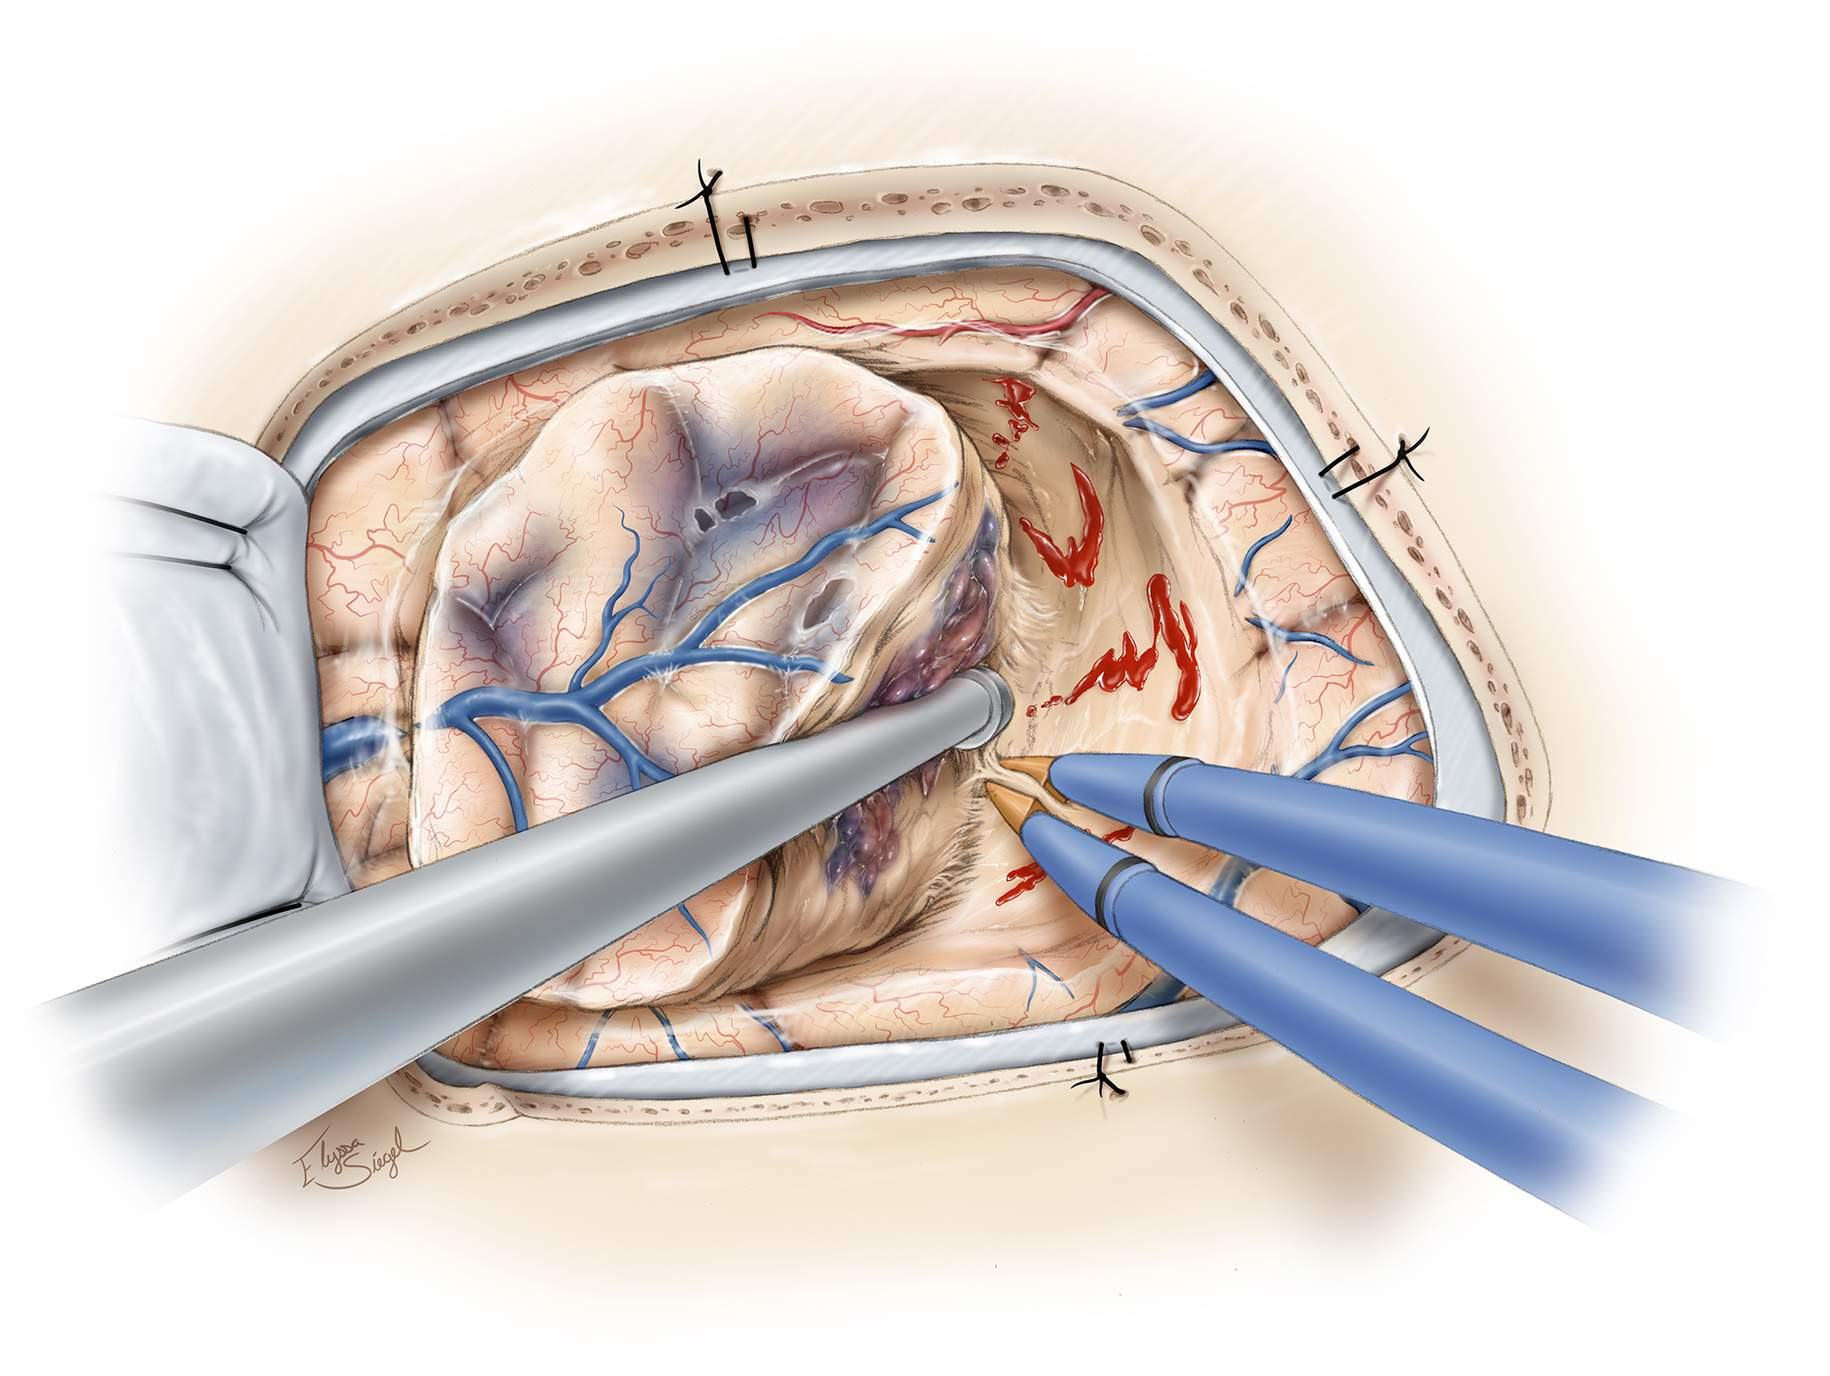 Figure 7: The malformation is disconnected from the surrounding white matter tracts. Pockets of hematoma at various stages of organization are encountered and evacuated. Subcortical dissection is maintained close to the wall of the nidus. CMs do not own high-flow feeders and their dissection does not involve significant bleeding.